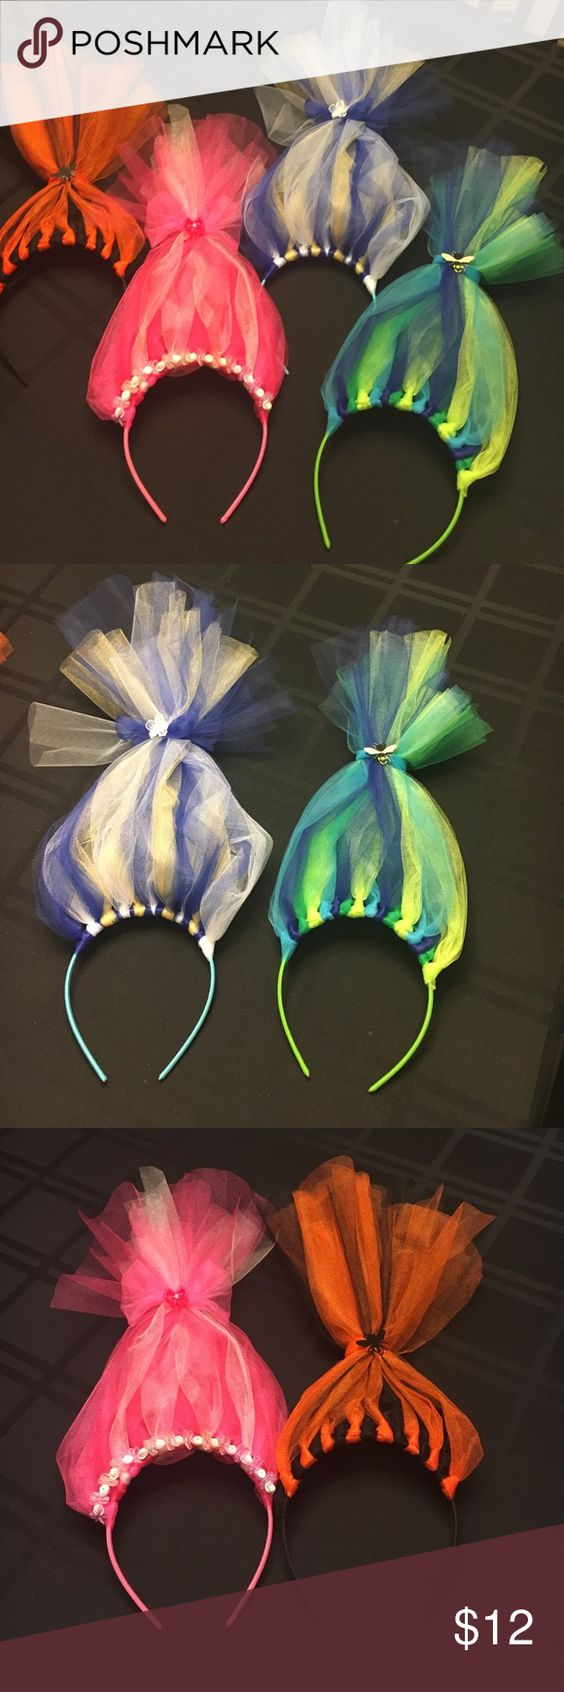 "Troll Hair Headbands Handcrafted ""Troll Hair"" tulle headbands are custom and made to order. Message me with color and decor requests  $12 each Accessories Hair Accessories:"